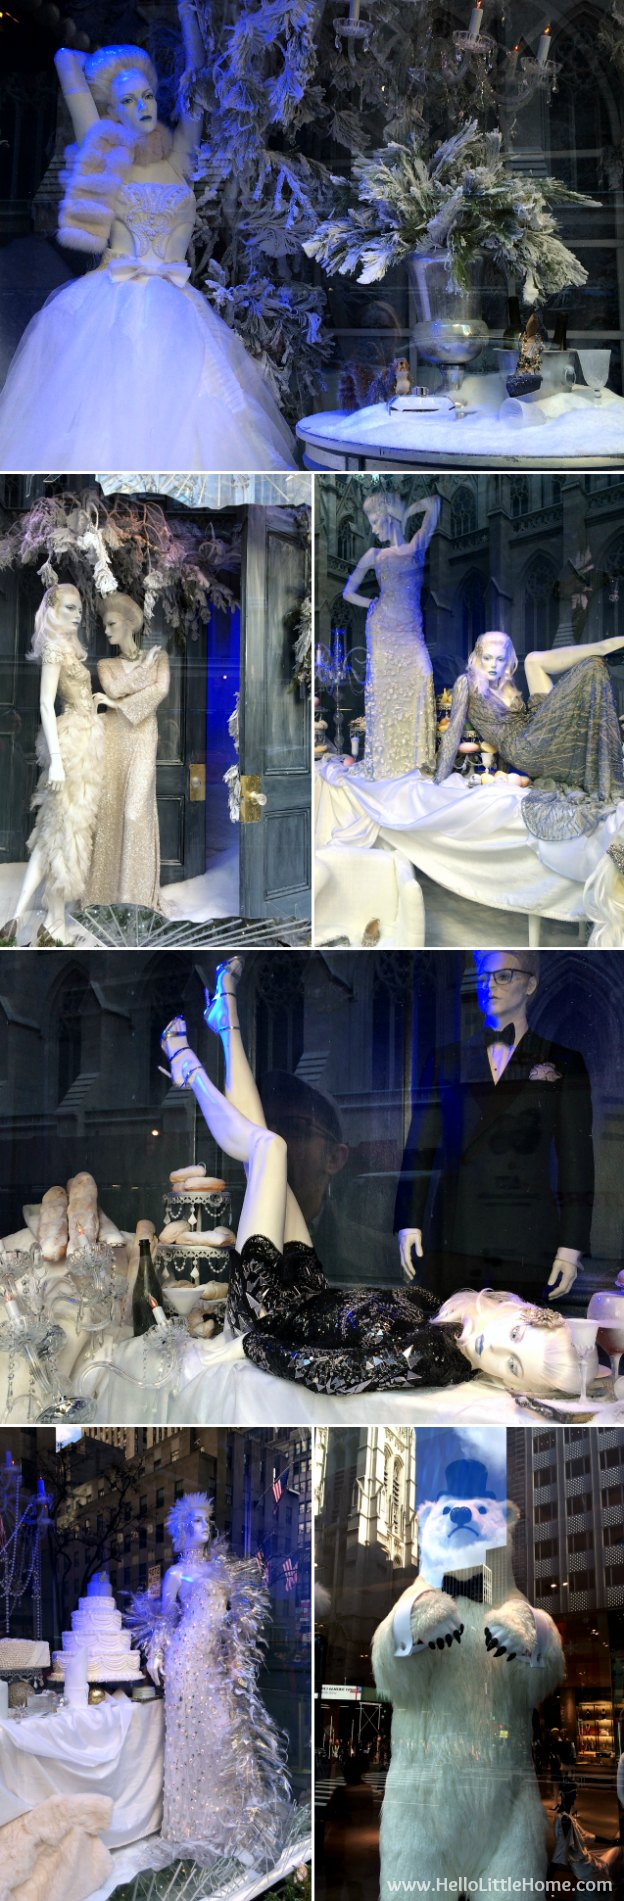 Join me on my NYC Holiday Tour 2015 of Christmas window displays, trees, and lights! Saks Fifth Avenue | Hello Little Home